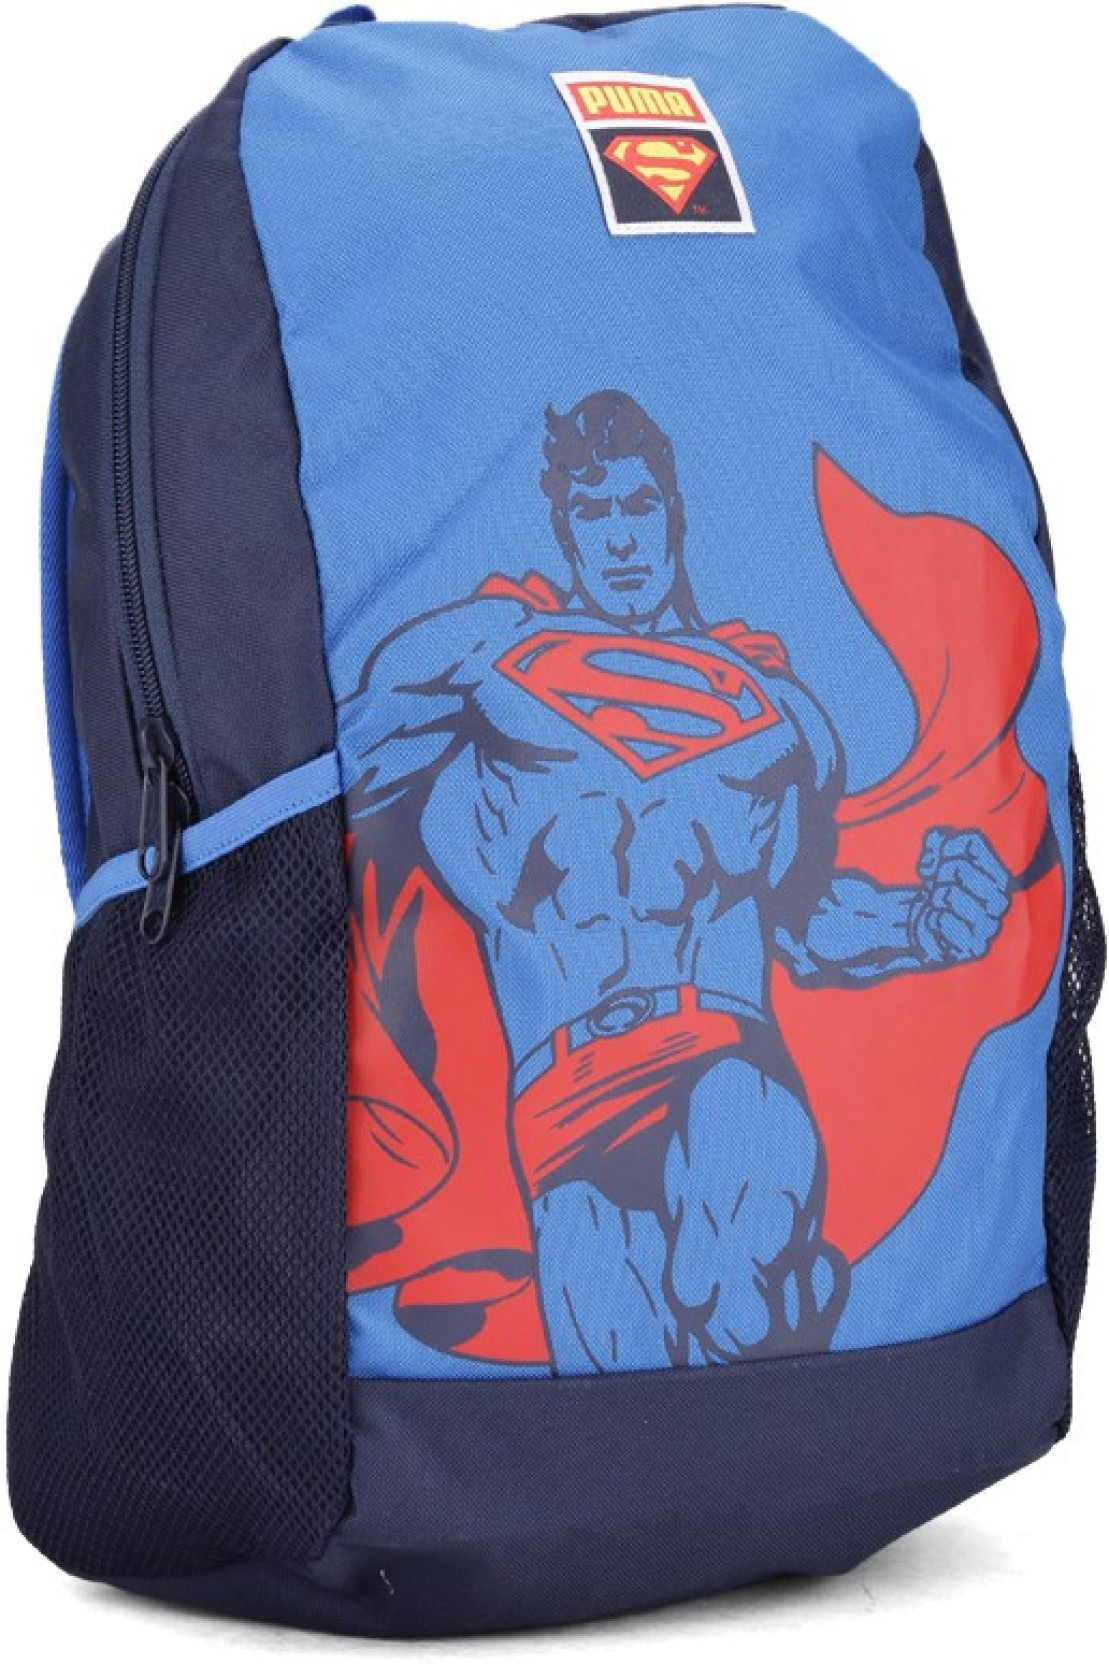 4288c9f424f84 Puma Superman Backpack with Cape Backpack princess blue - Price in ...